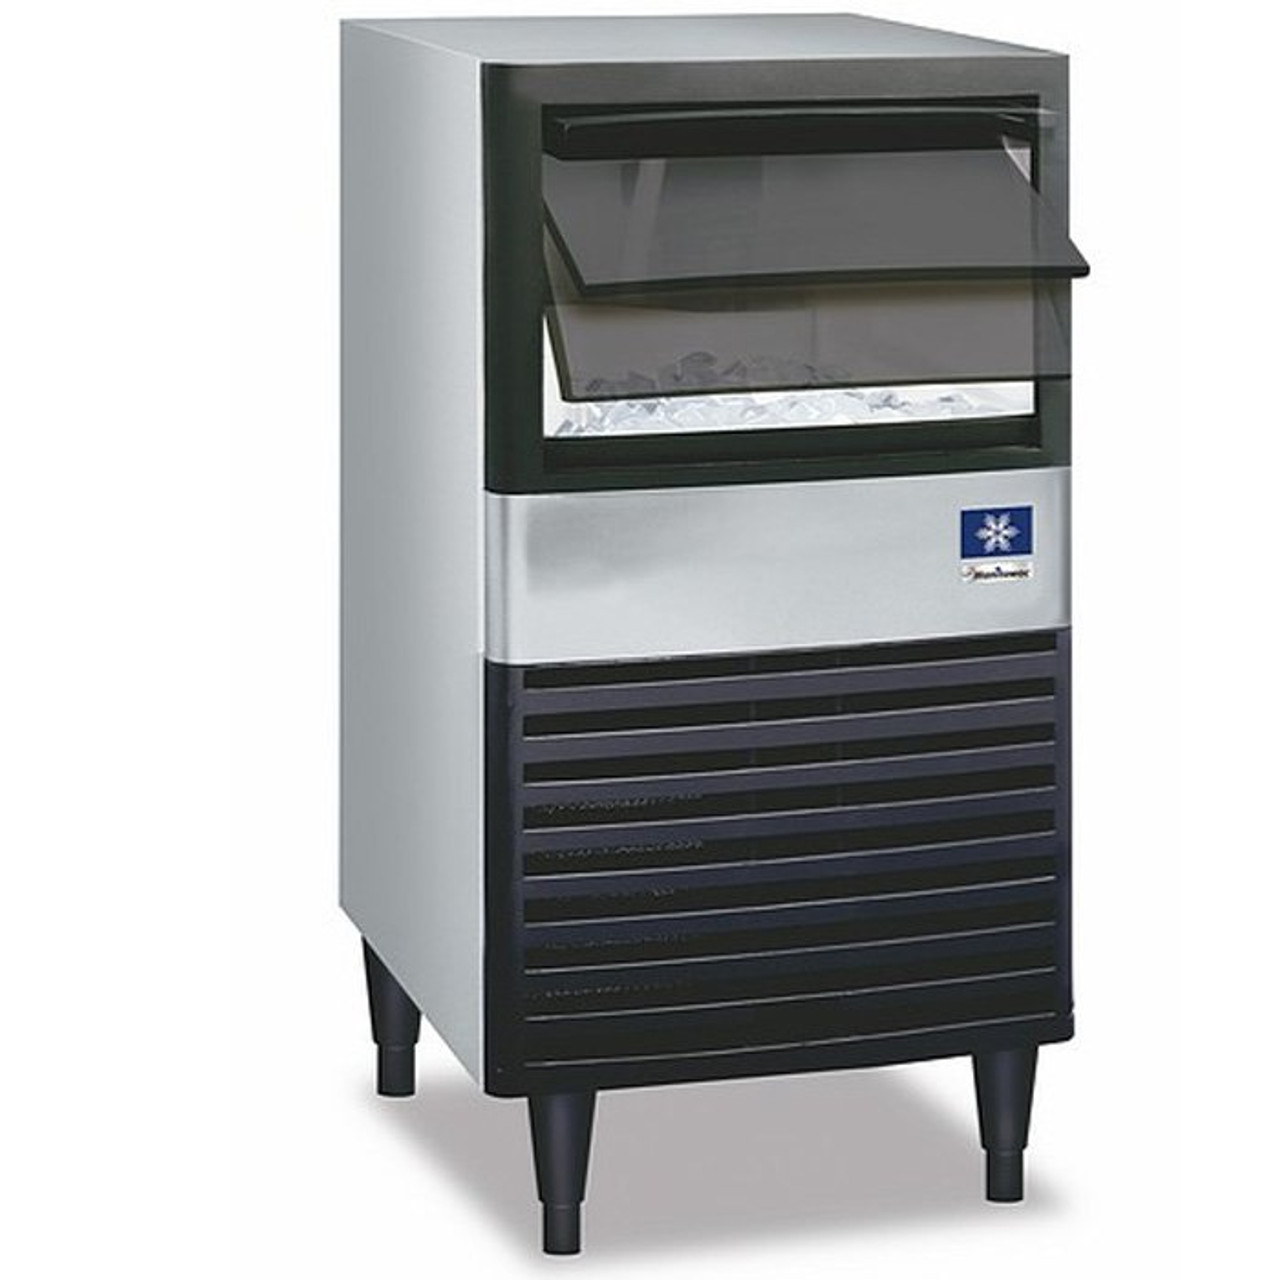 Manitowoc Ude0065a 161b 65 Lbs Undercounter Ice Maker Manitowoc Qm 30a Try Before You Buy Prima Supply